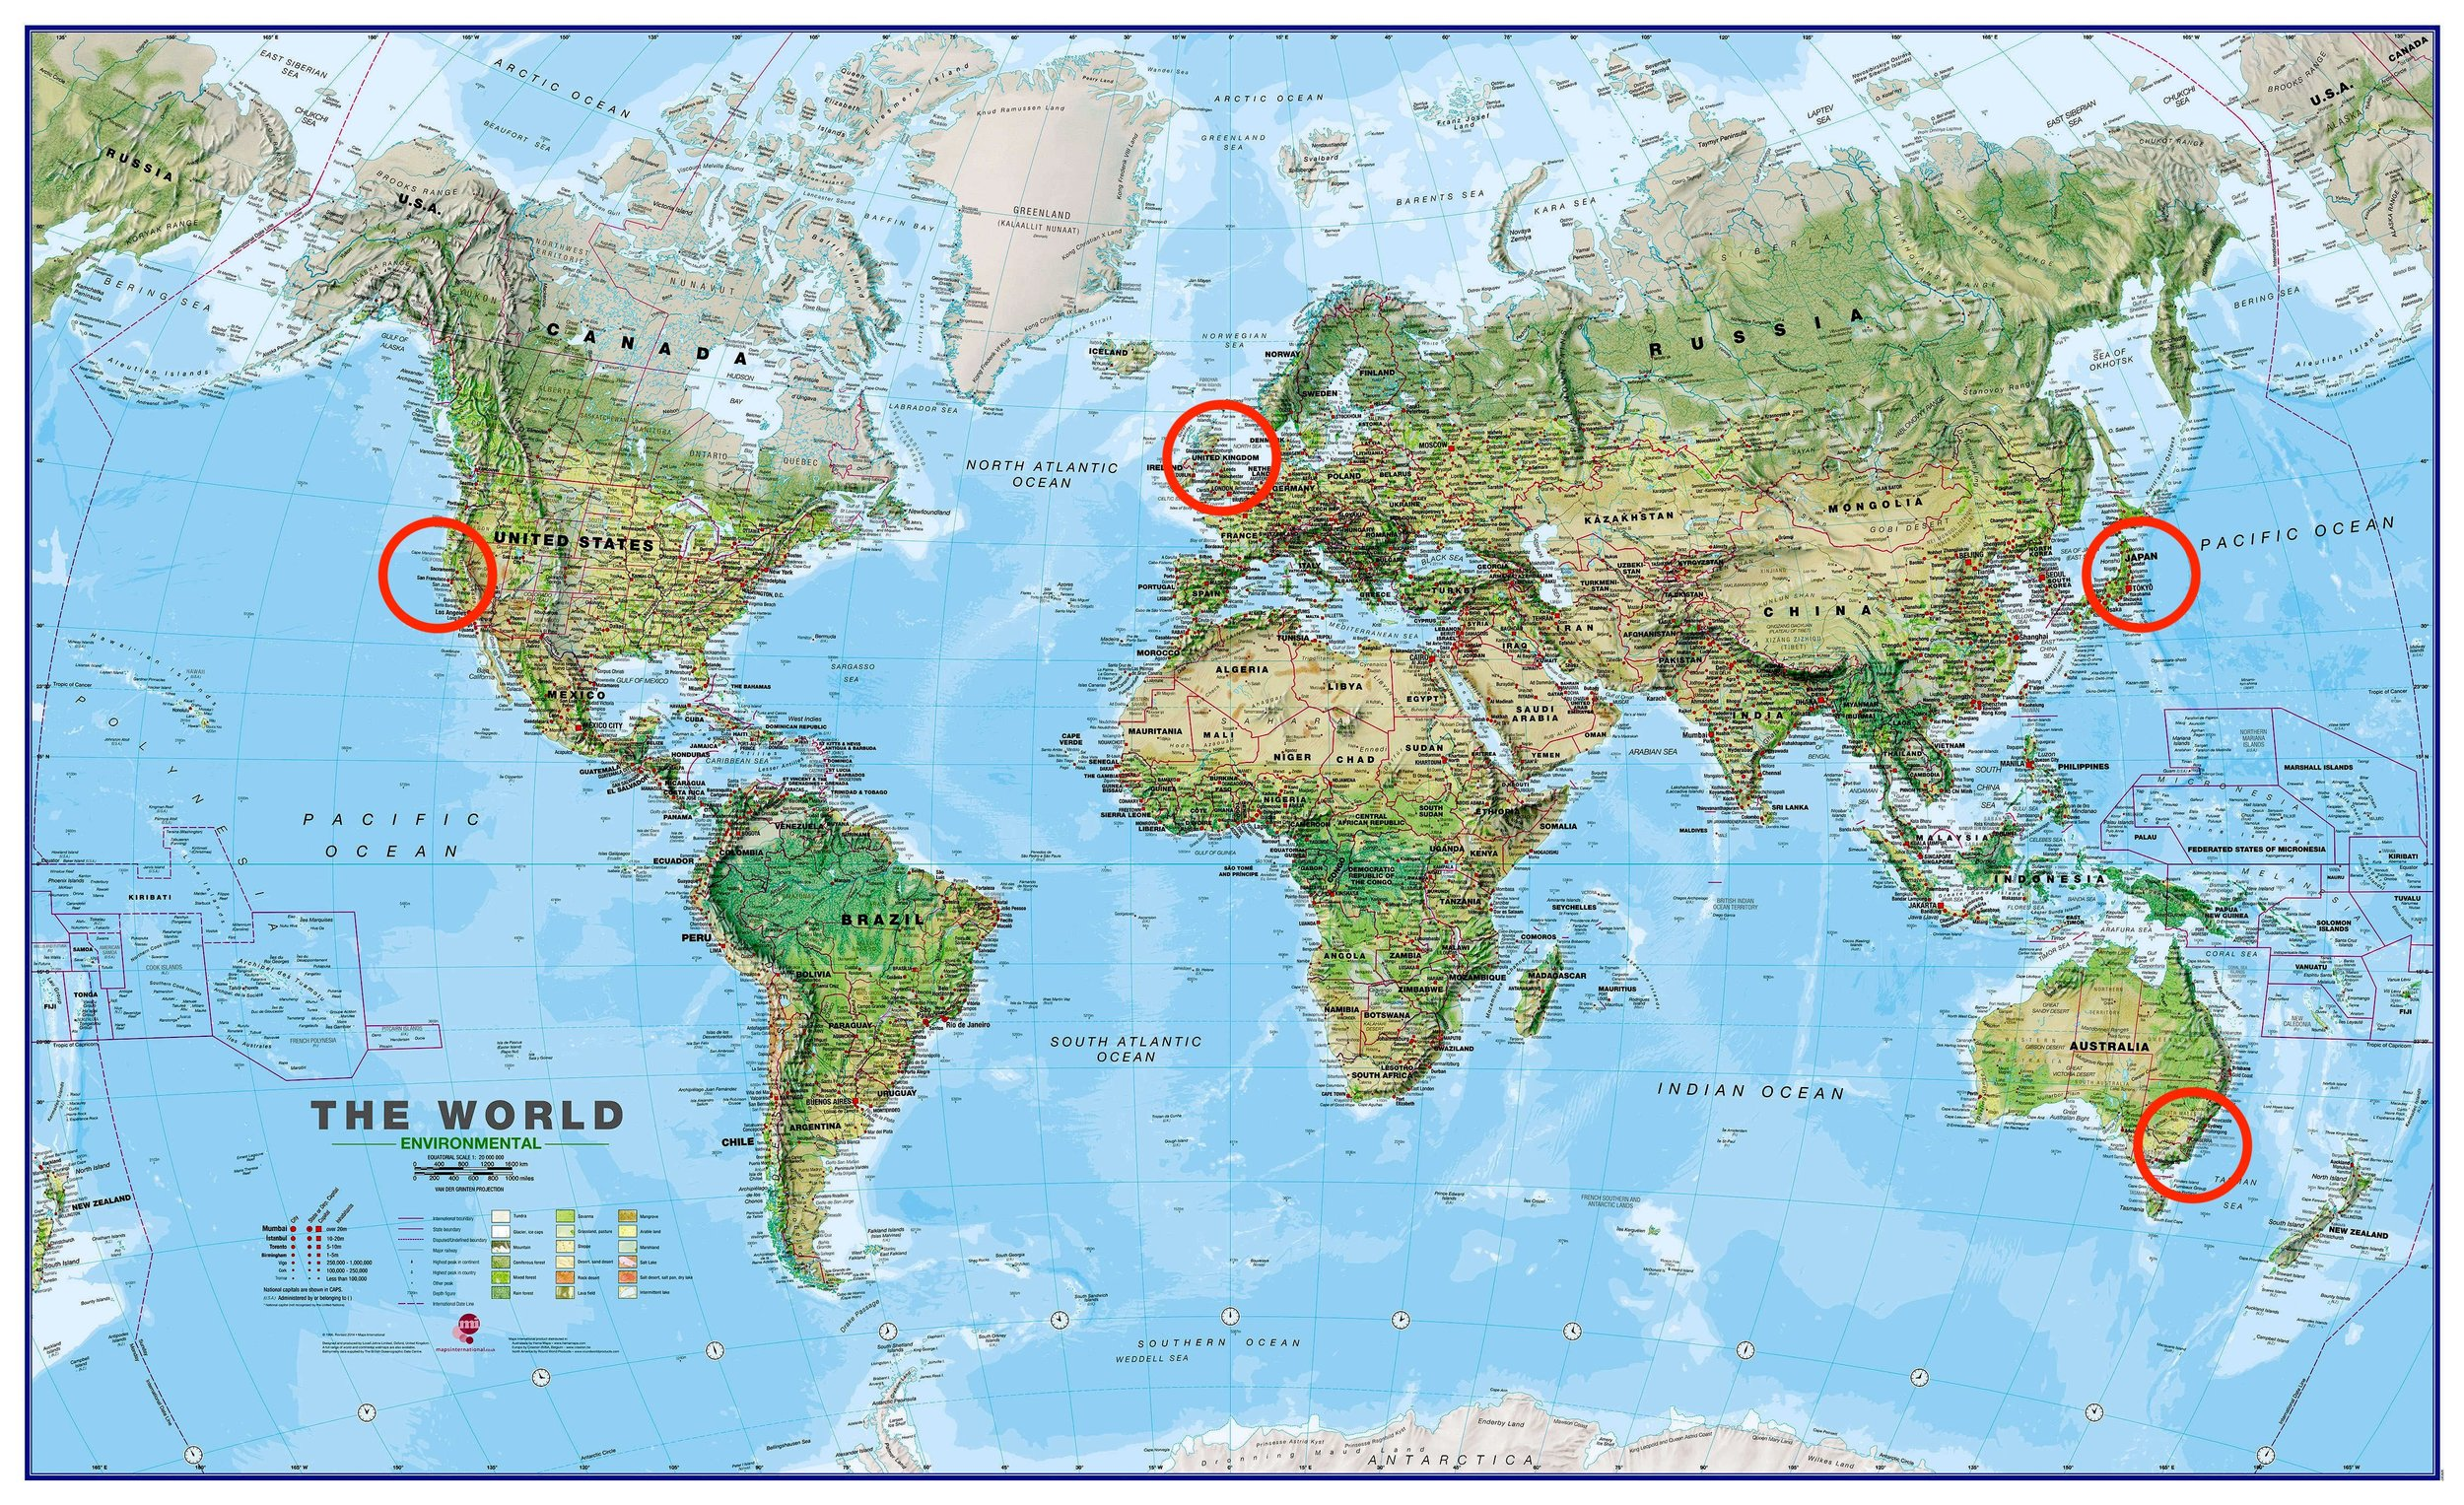 world-wall-map-environmental-without-flags_wm00008.jpg